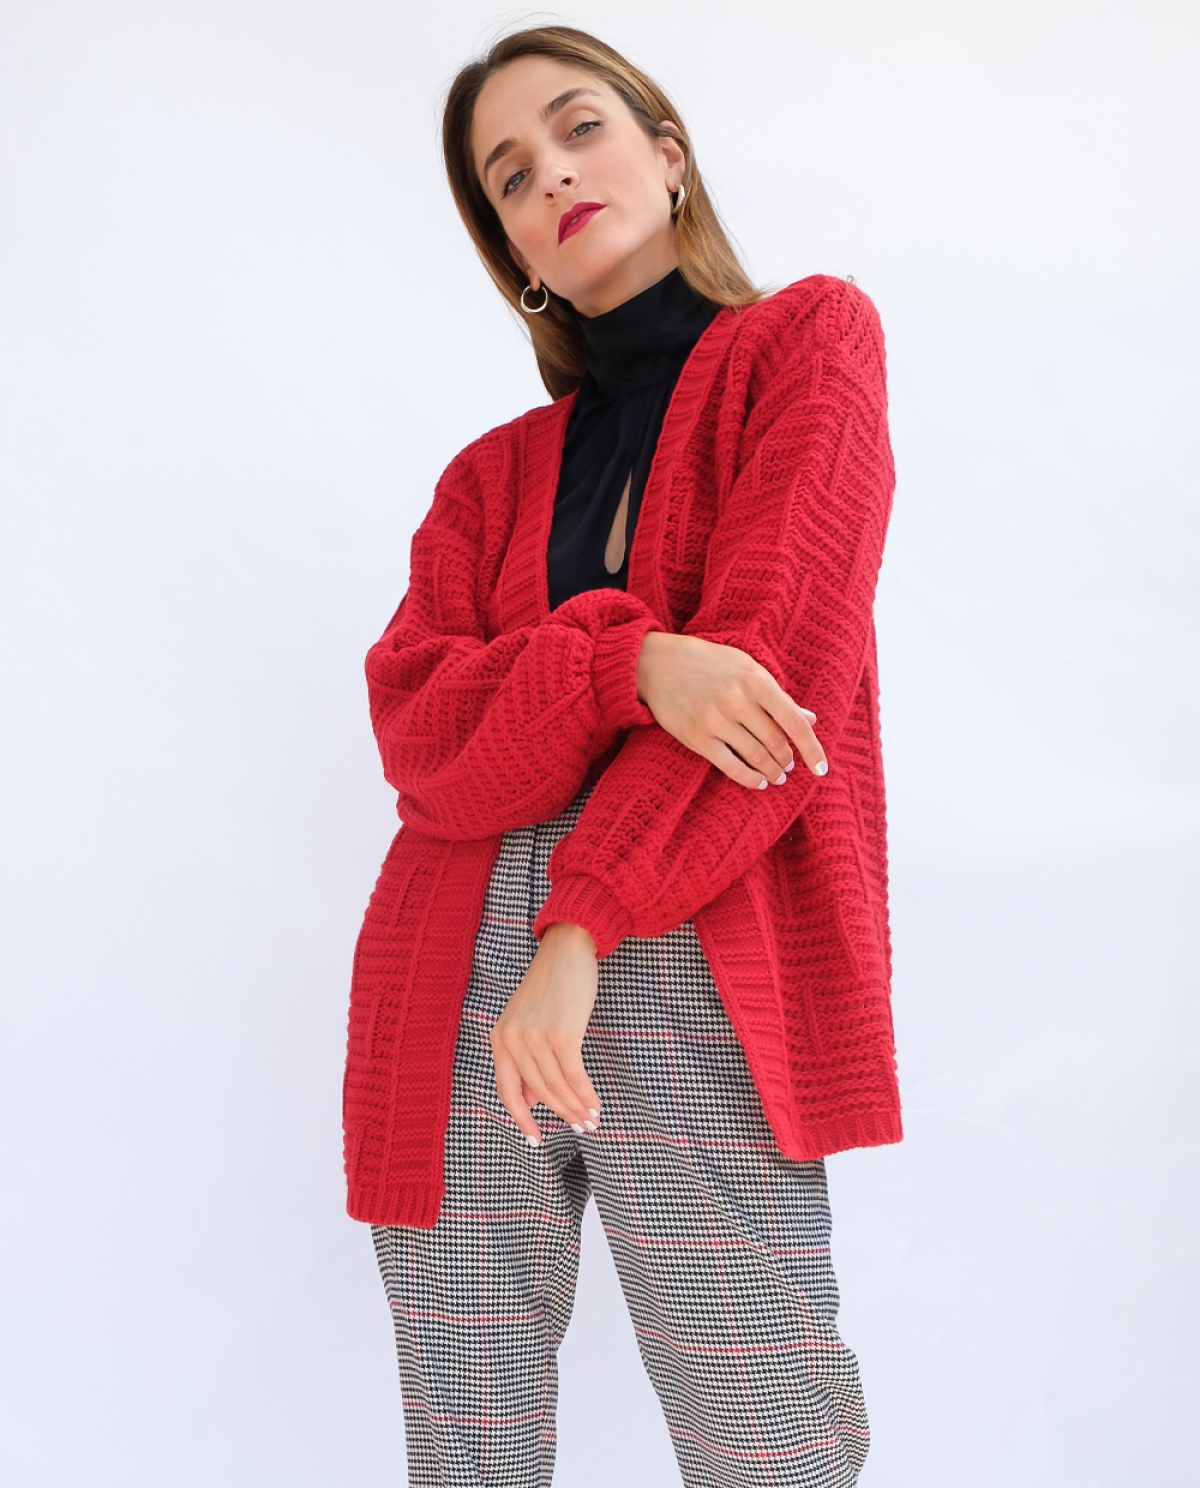 Vivid Red Knitted Cardigan